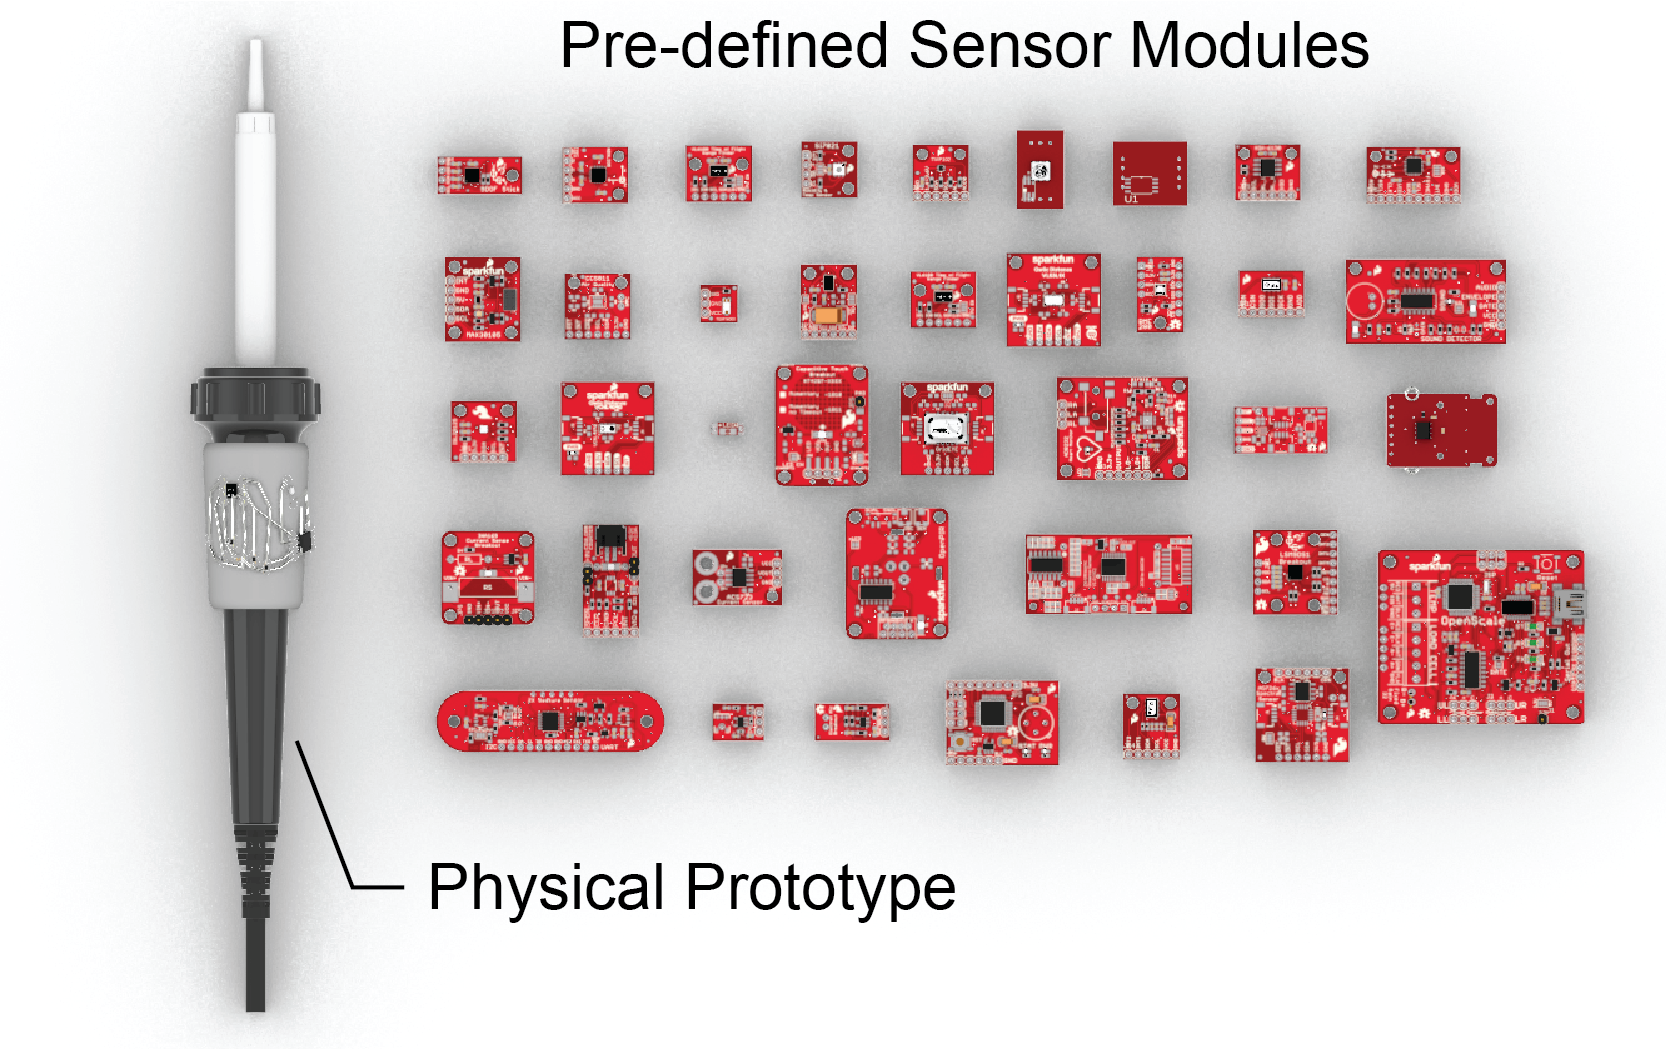 MorphSensor: A 3D Electronic Design Tool for Reforming Sensor Modules